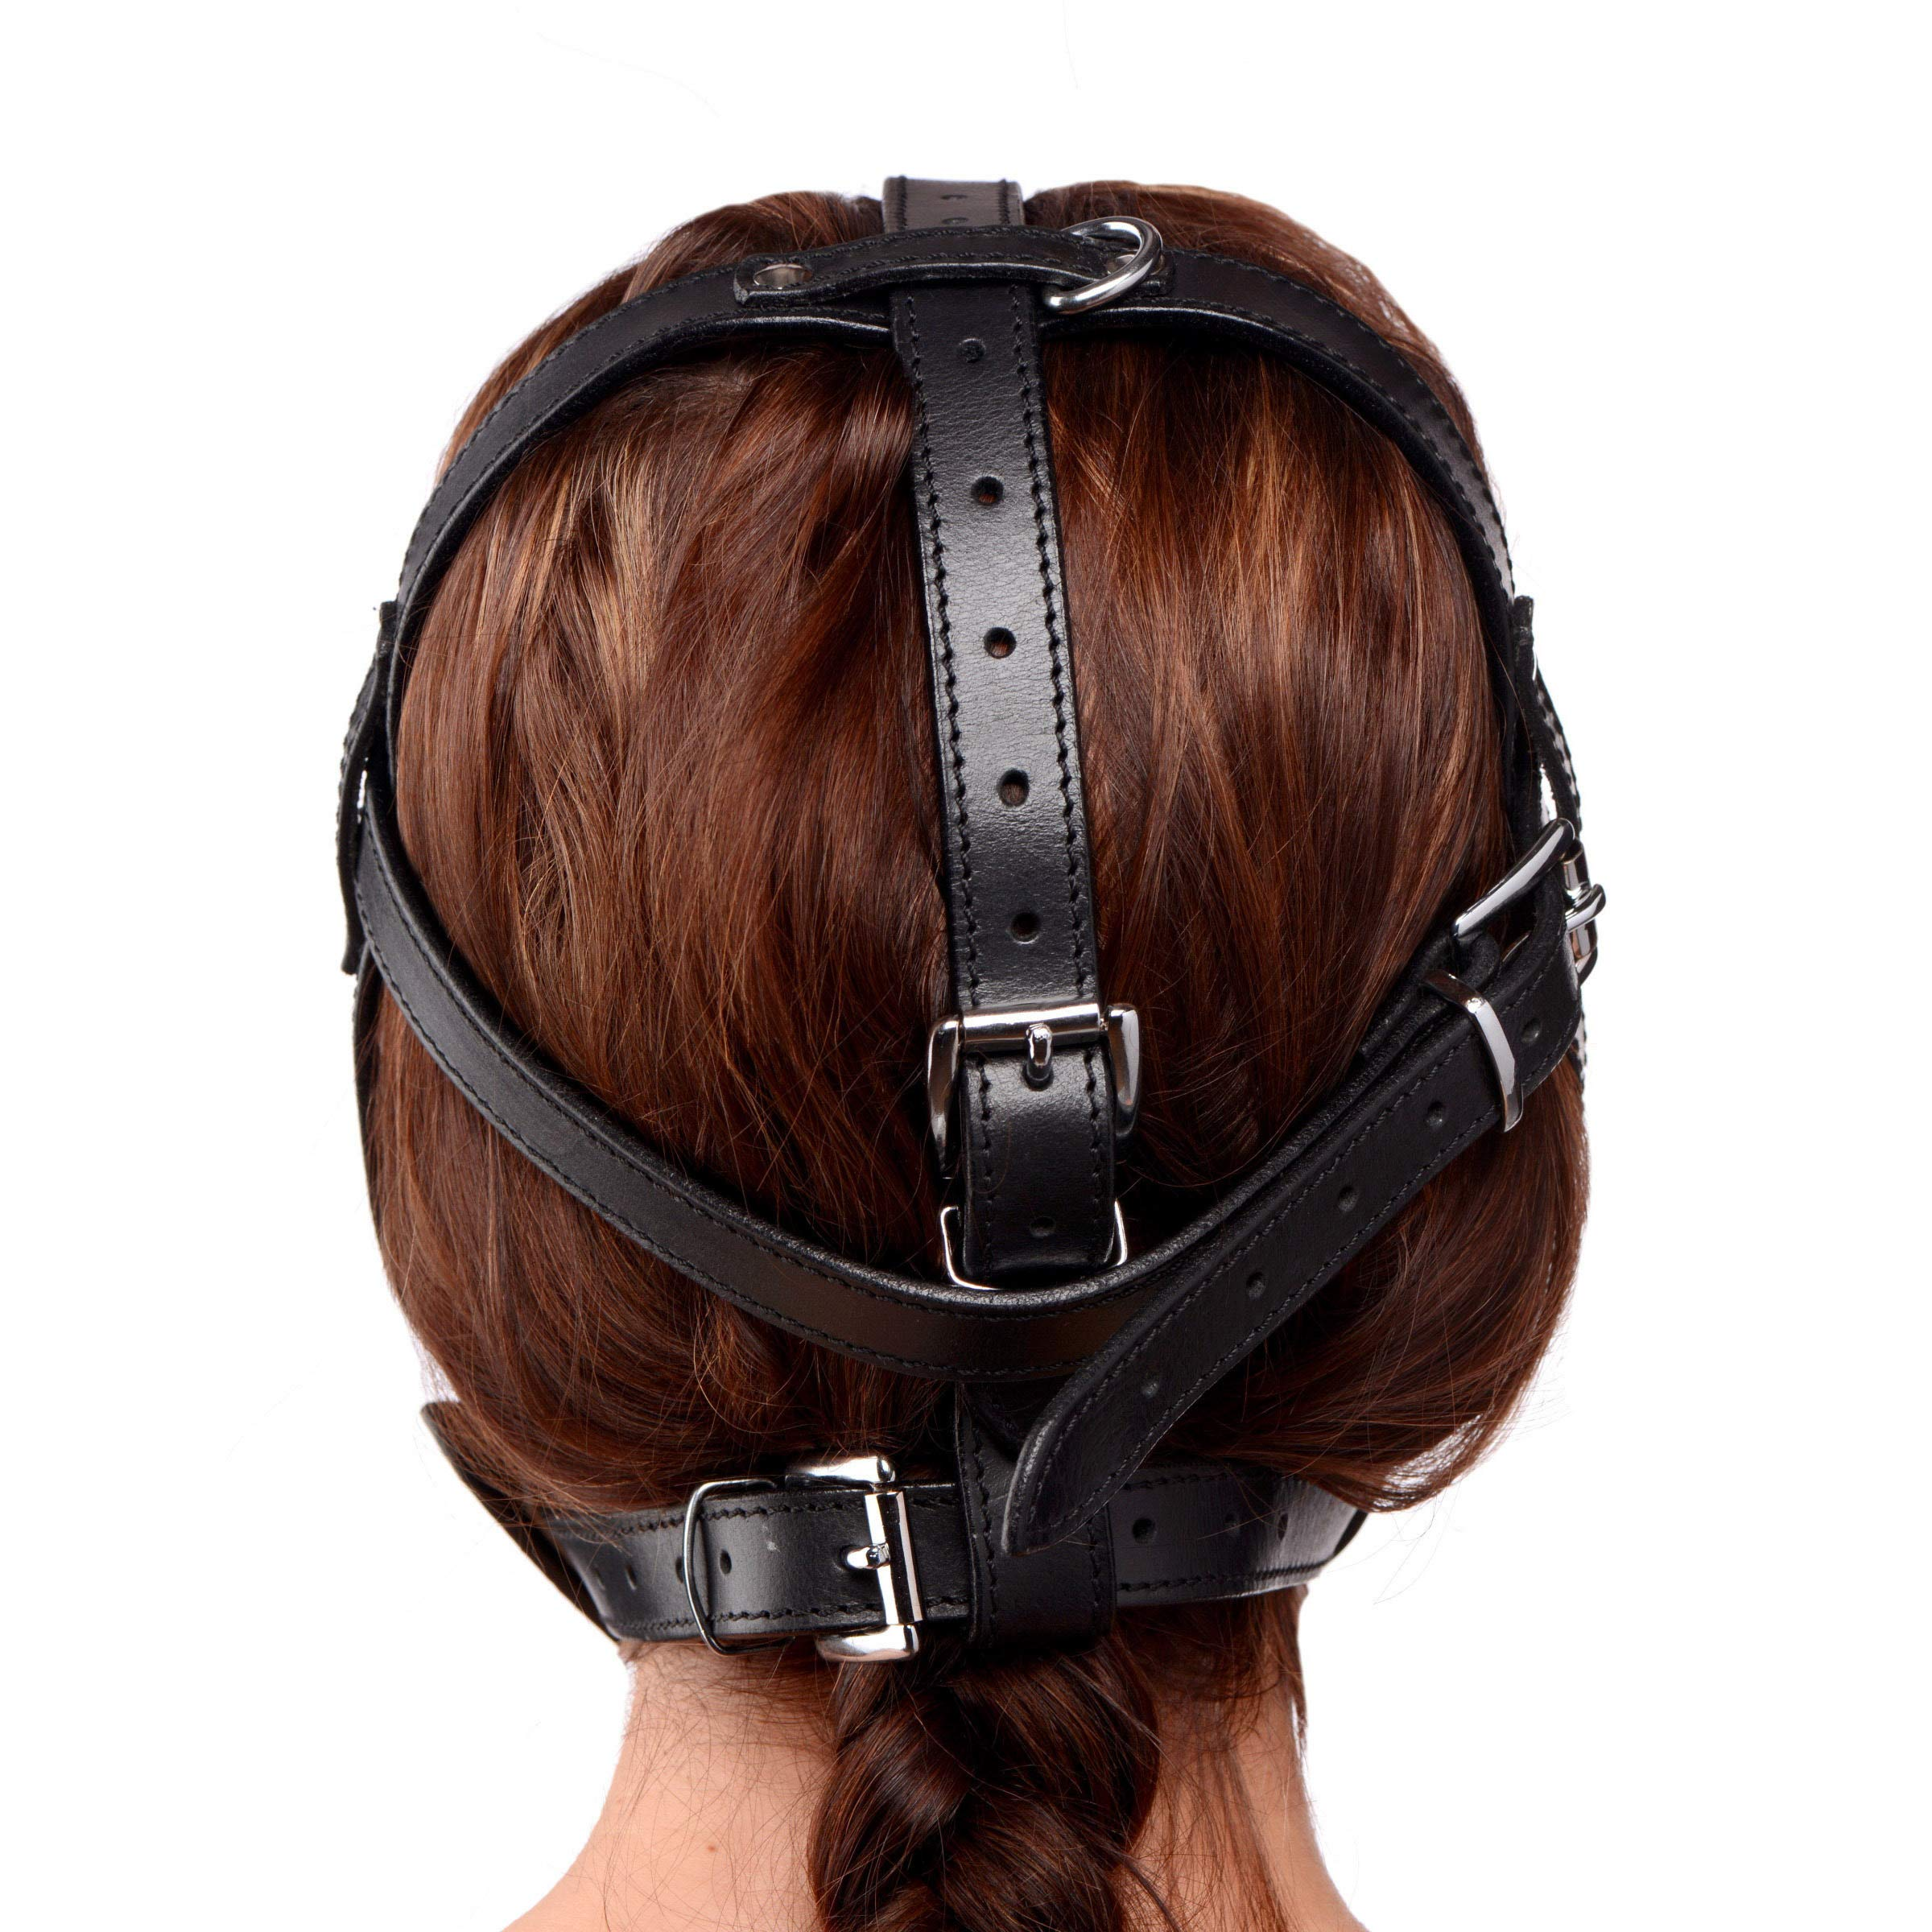 Strict Leather Plug It Up Head Harness with Mouth Gag by Strict Leather